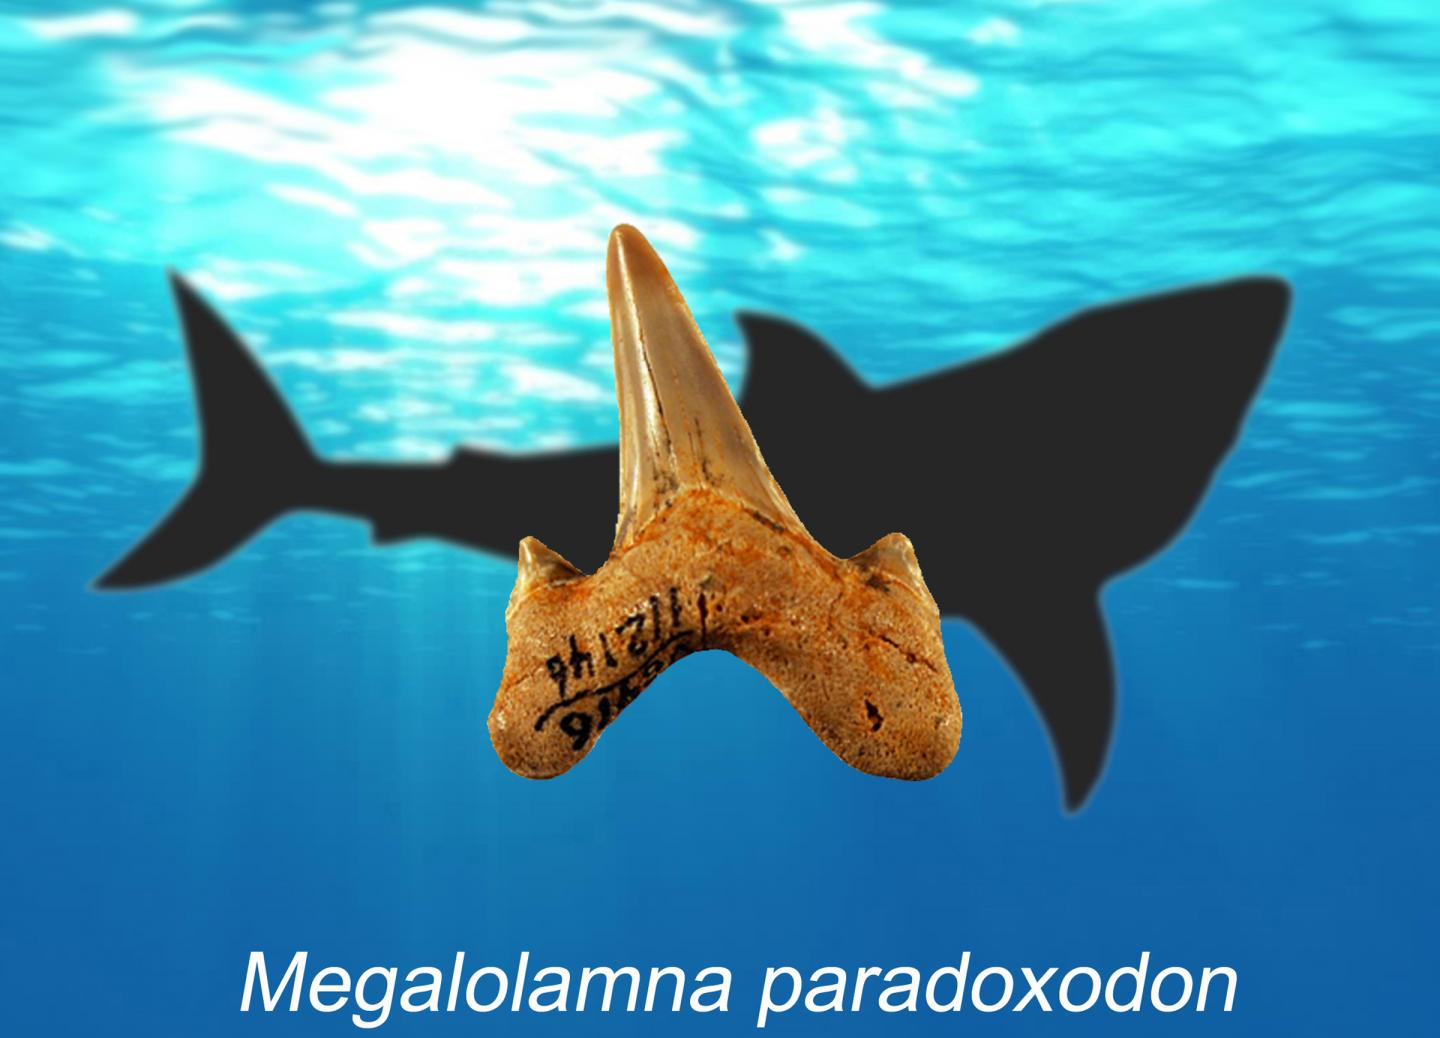 Ancient teeth lead researchers to prehistoric shark discovery